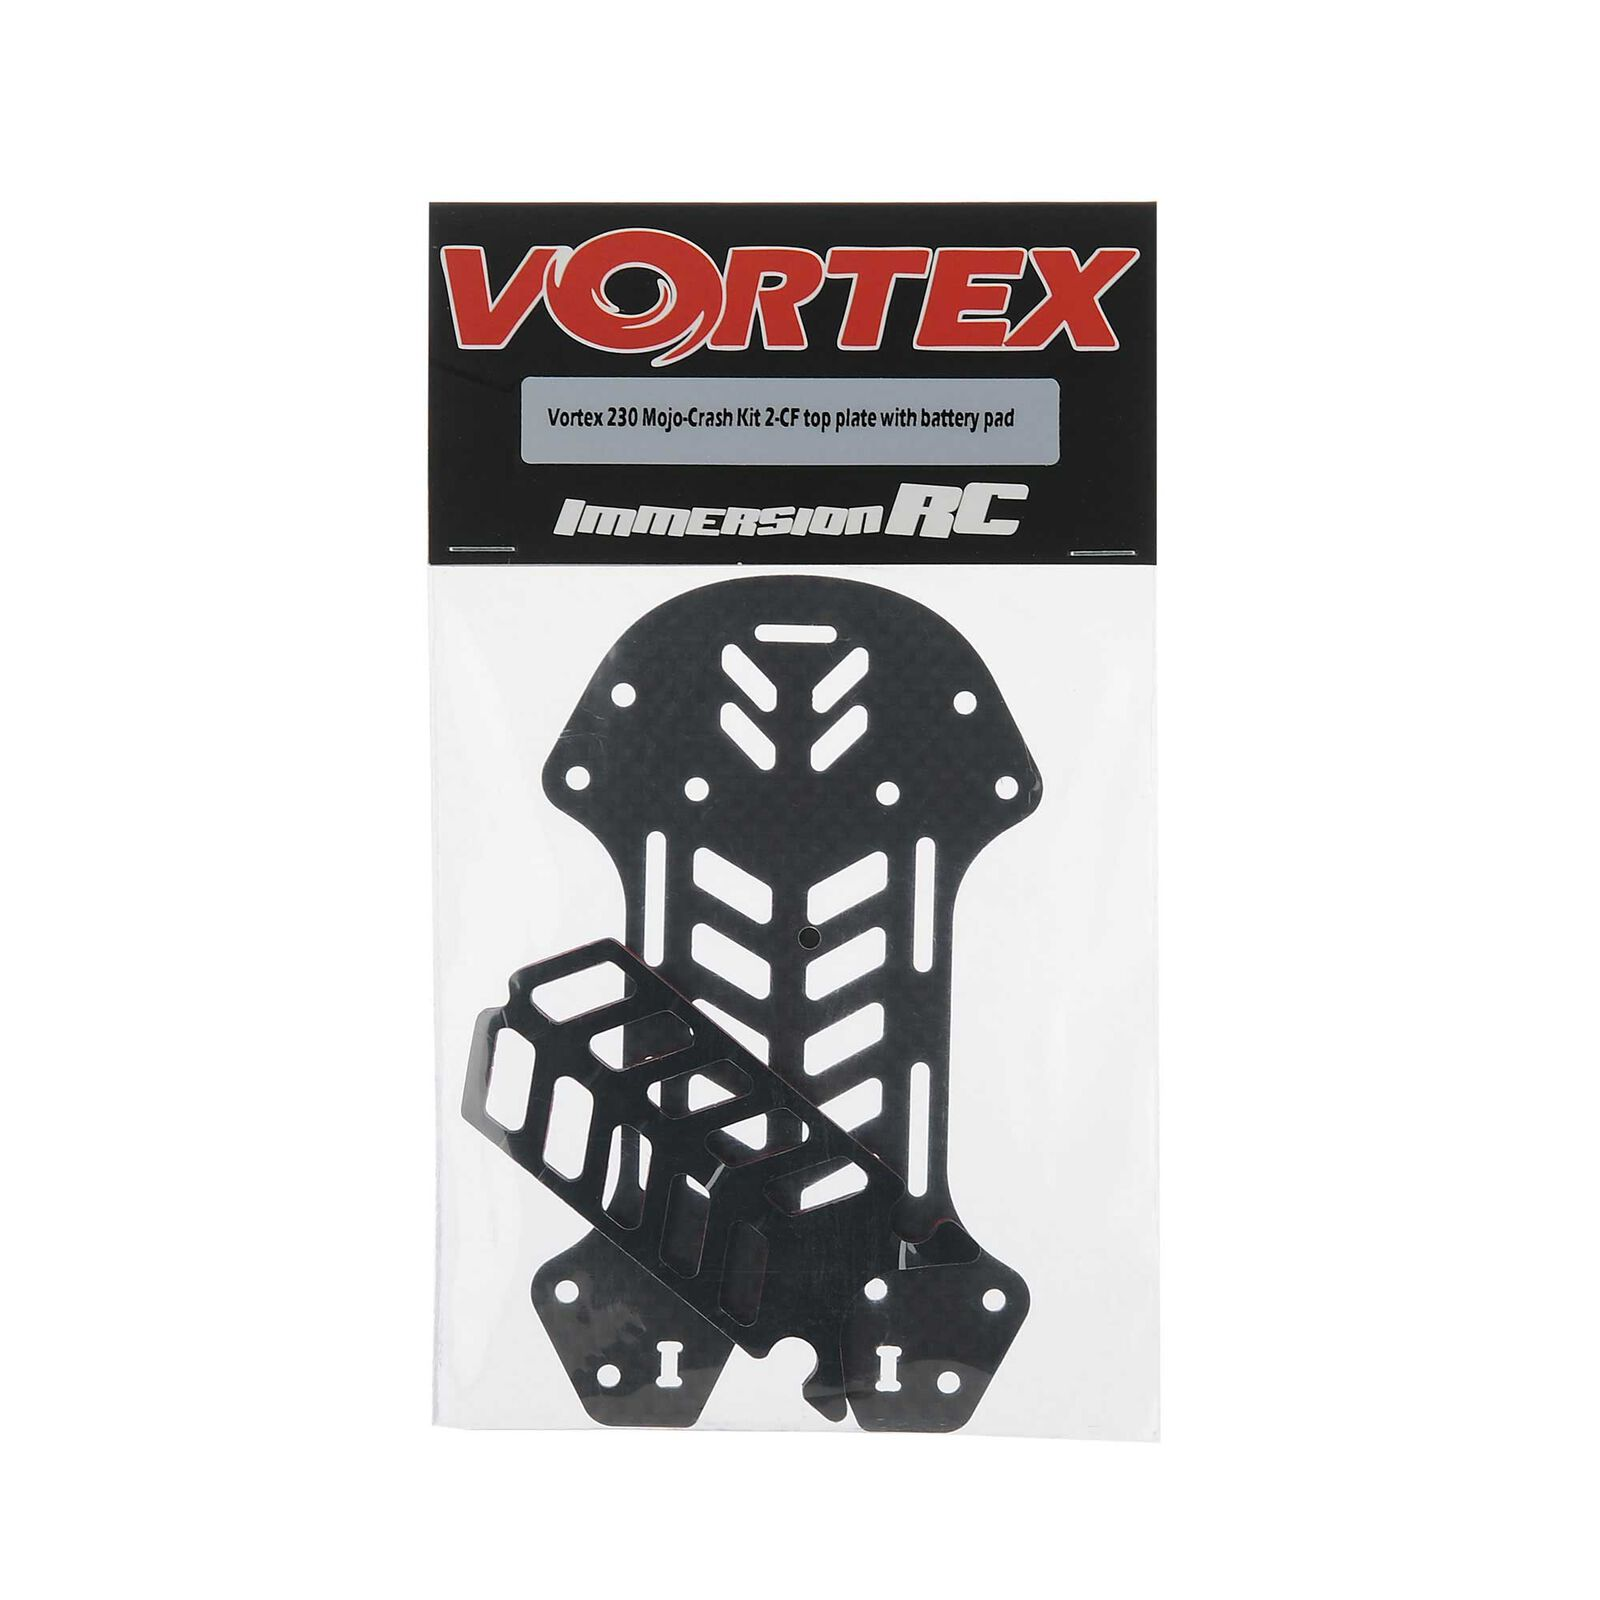 Crash Kit 2 - CF Top Plate Battery Pad: Vortex 230